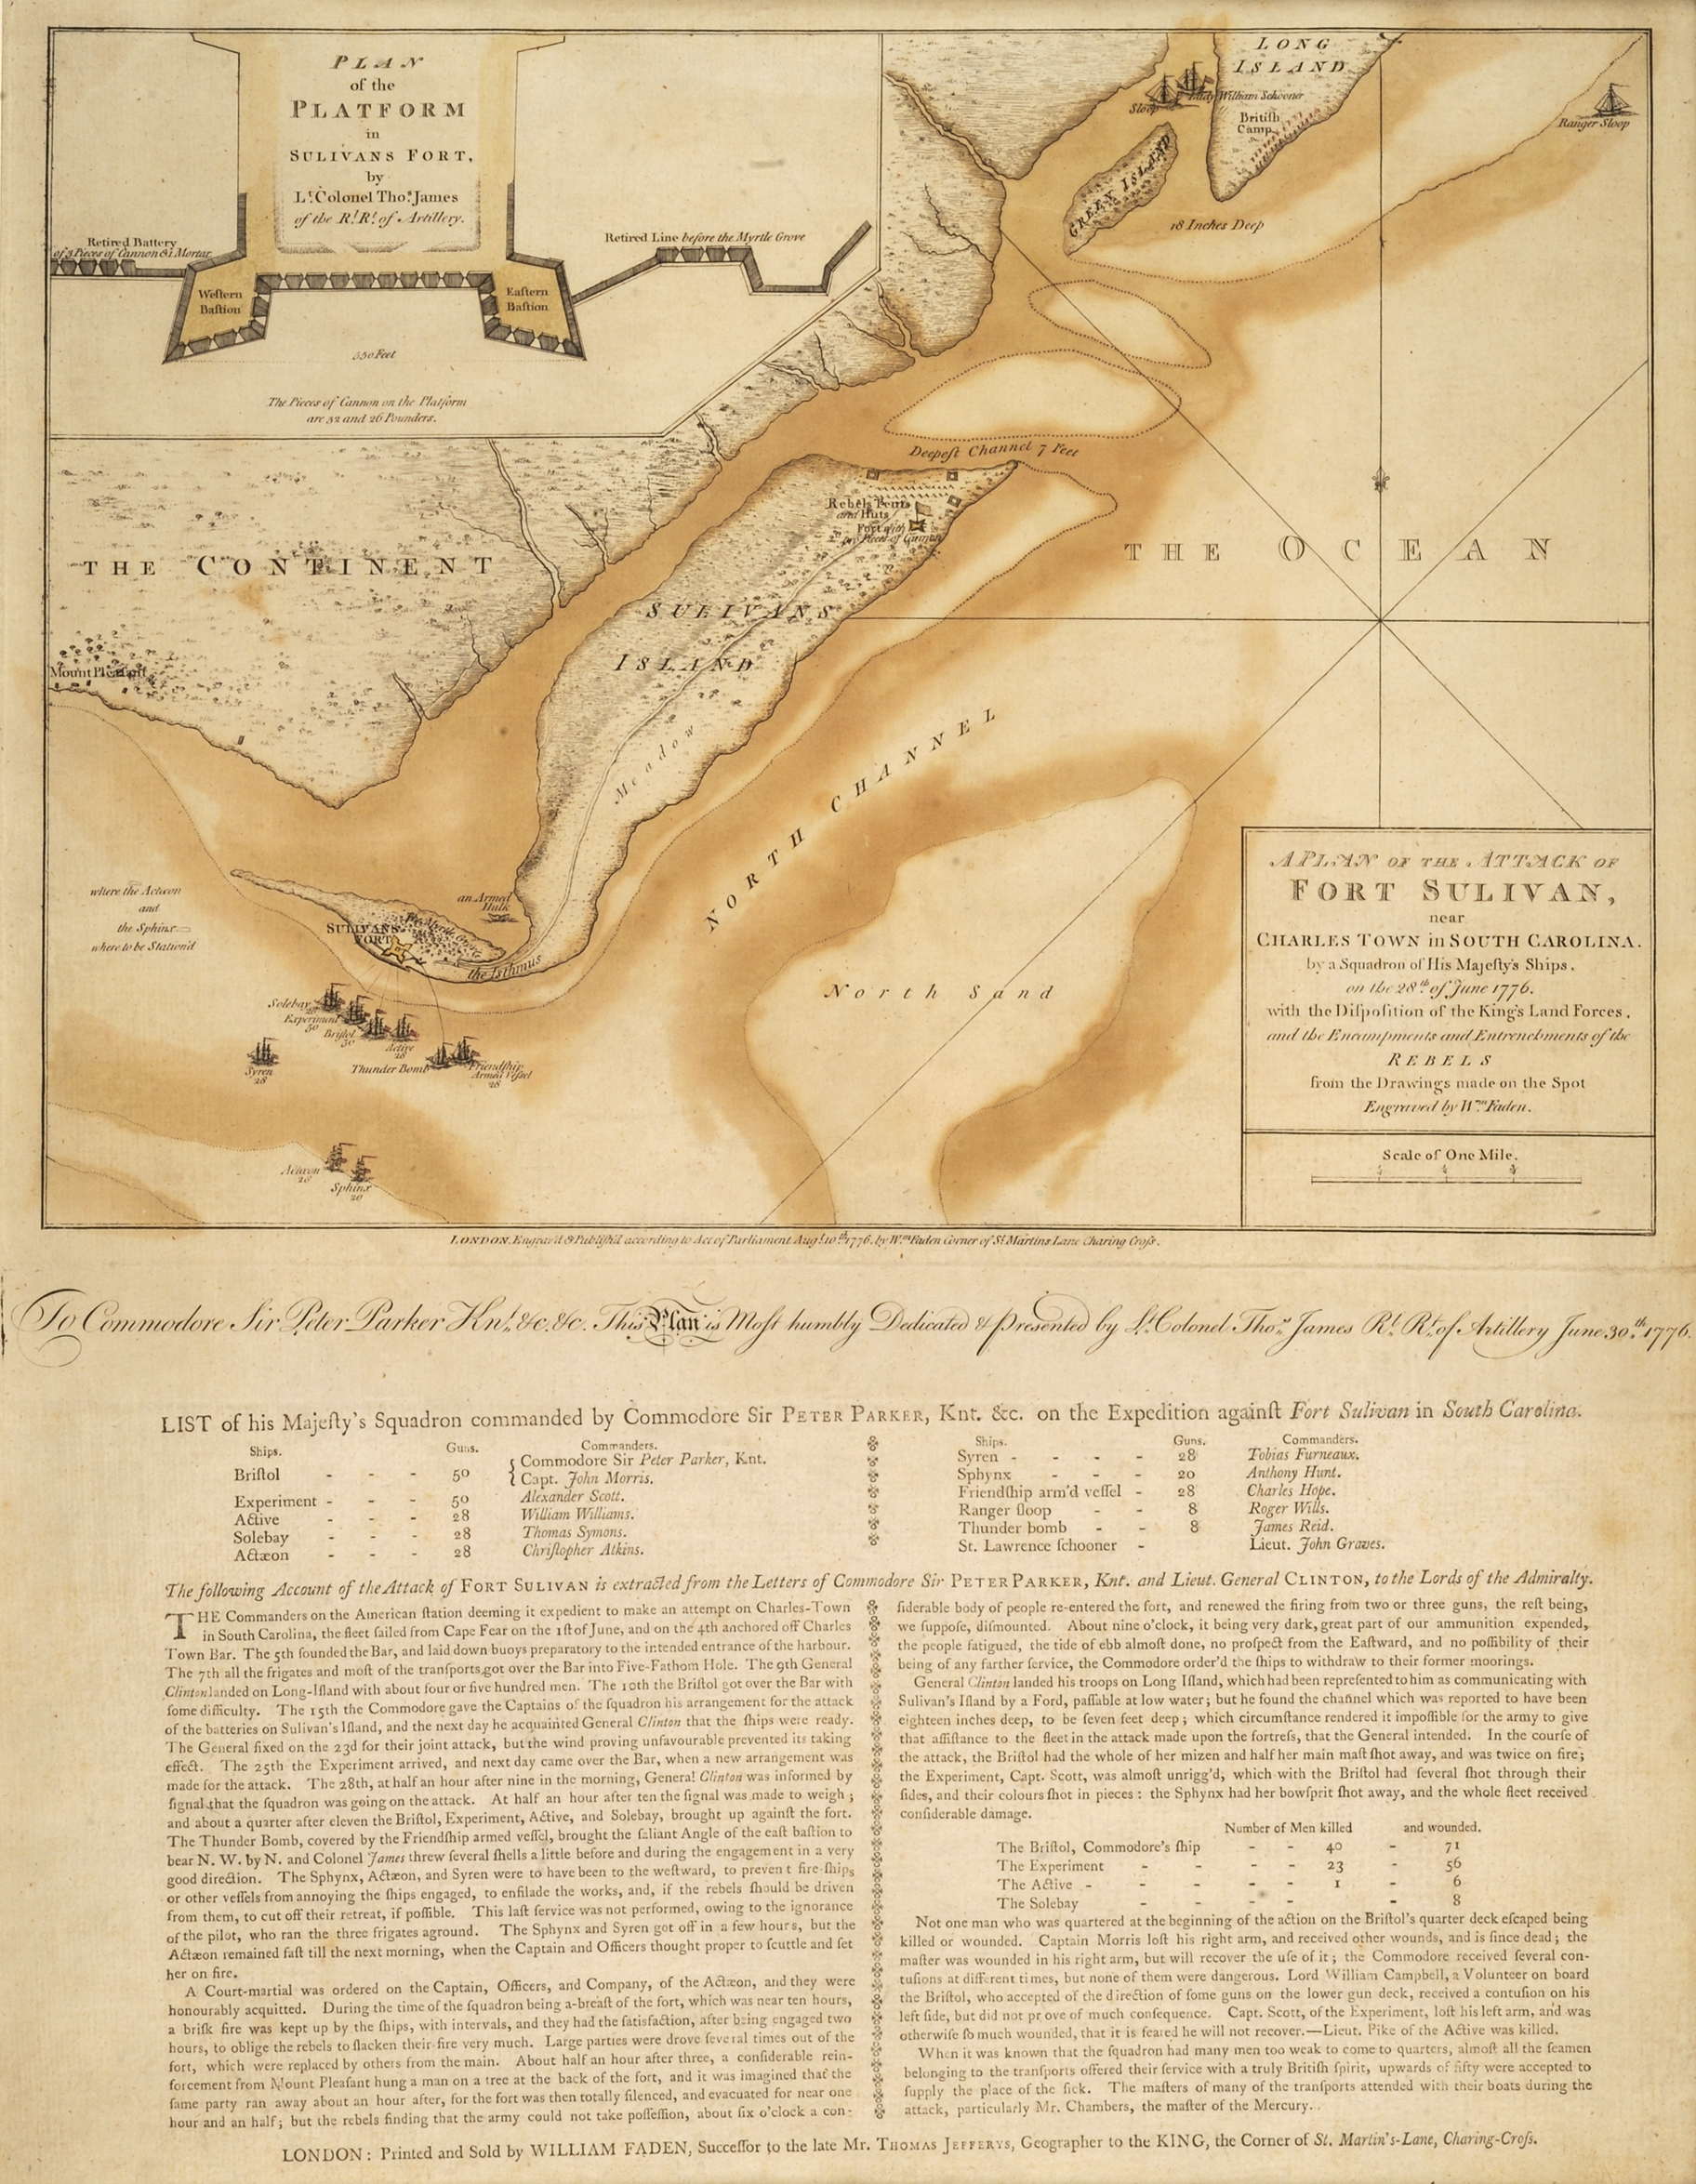 A Plan of the Attack of Fort Sulivan, near Charles Town in South Carolina, by a Squadron of His Majesty's Ships, on the 28th of June 1776, with the Disposition of the King's Land Forces, and the Encampments and Entrenchments of the Rebels from the Drawings made on the Spot, William Faden, London: Engraved & Publish'd by Wm. Faden, 1776